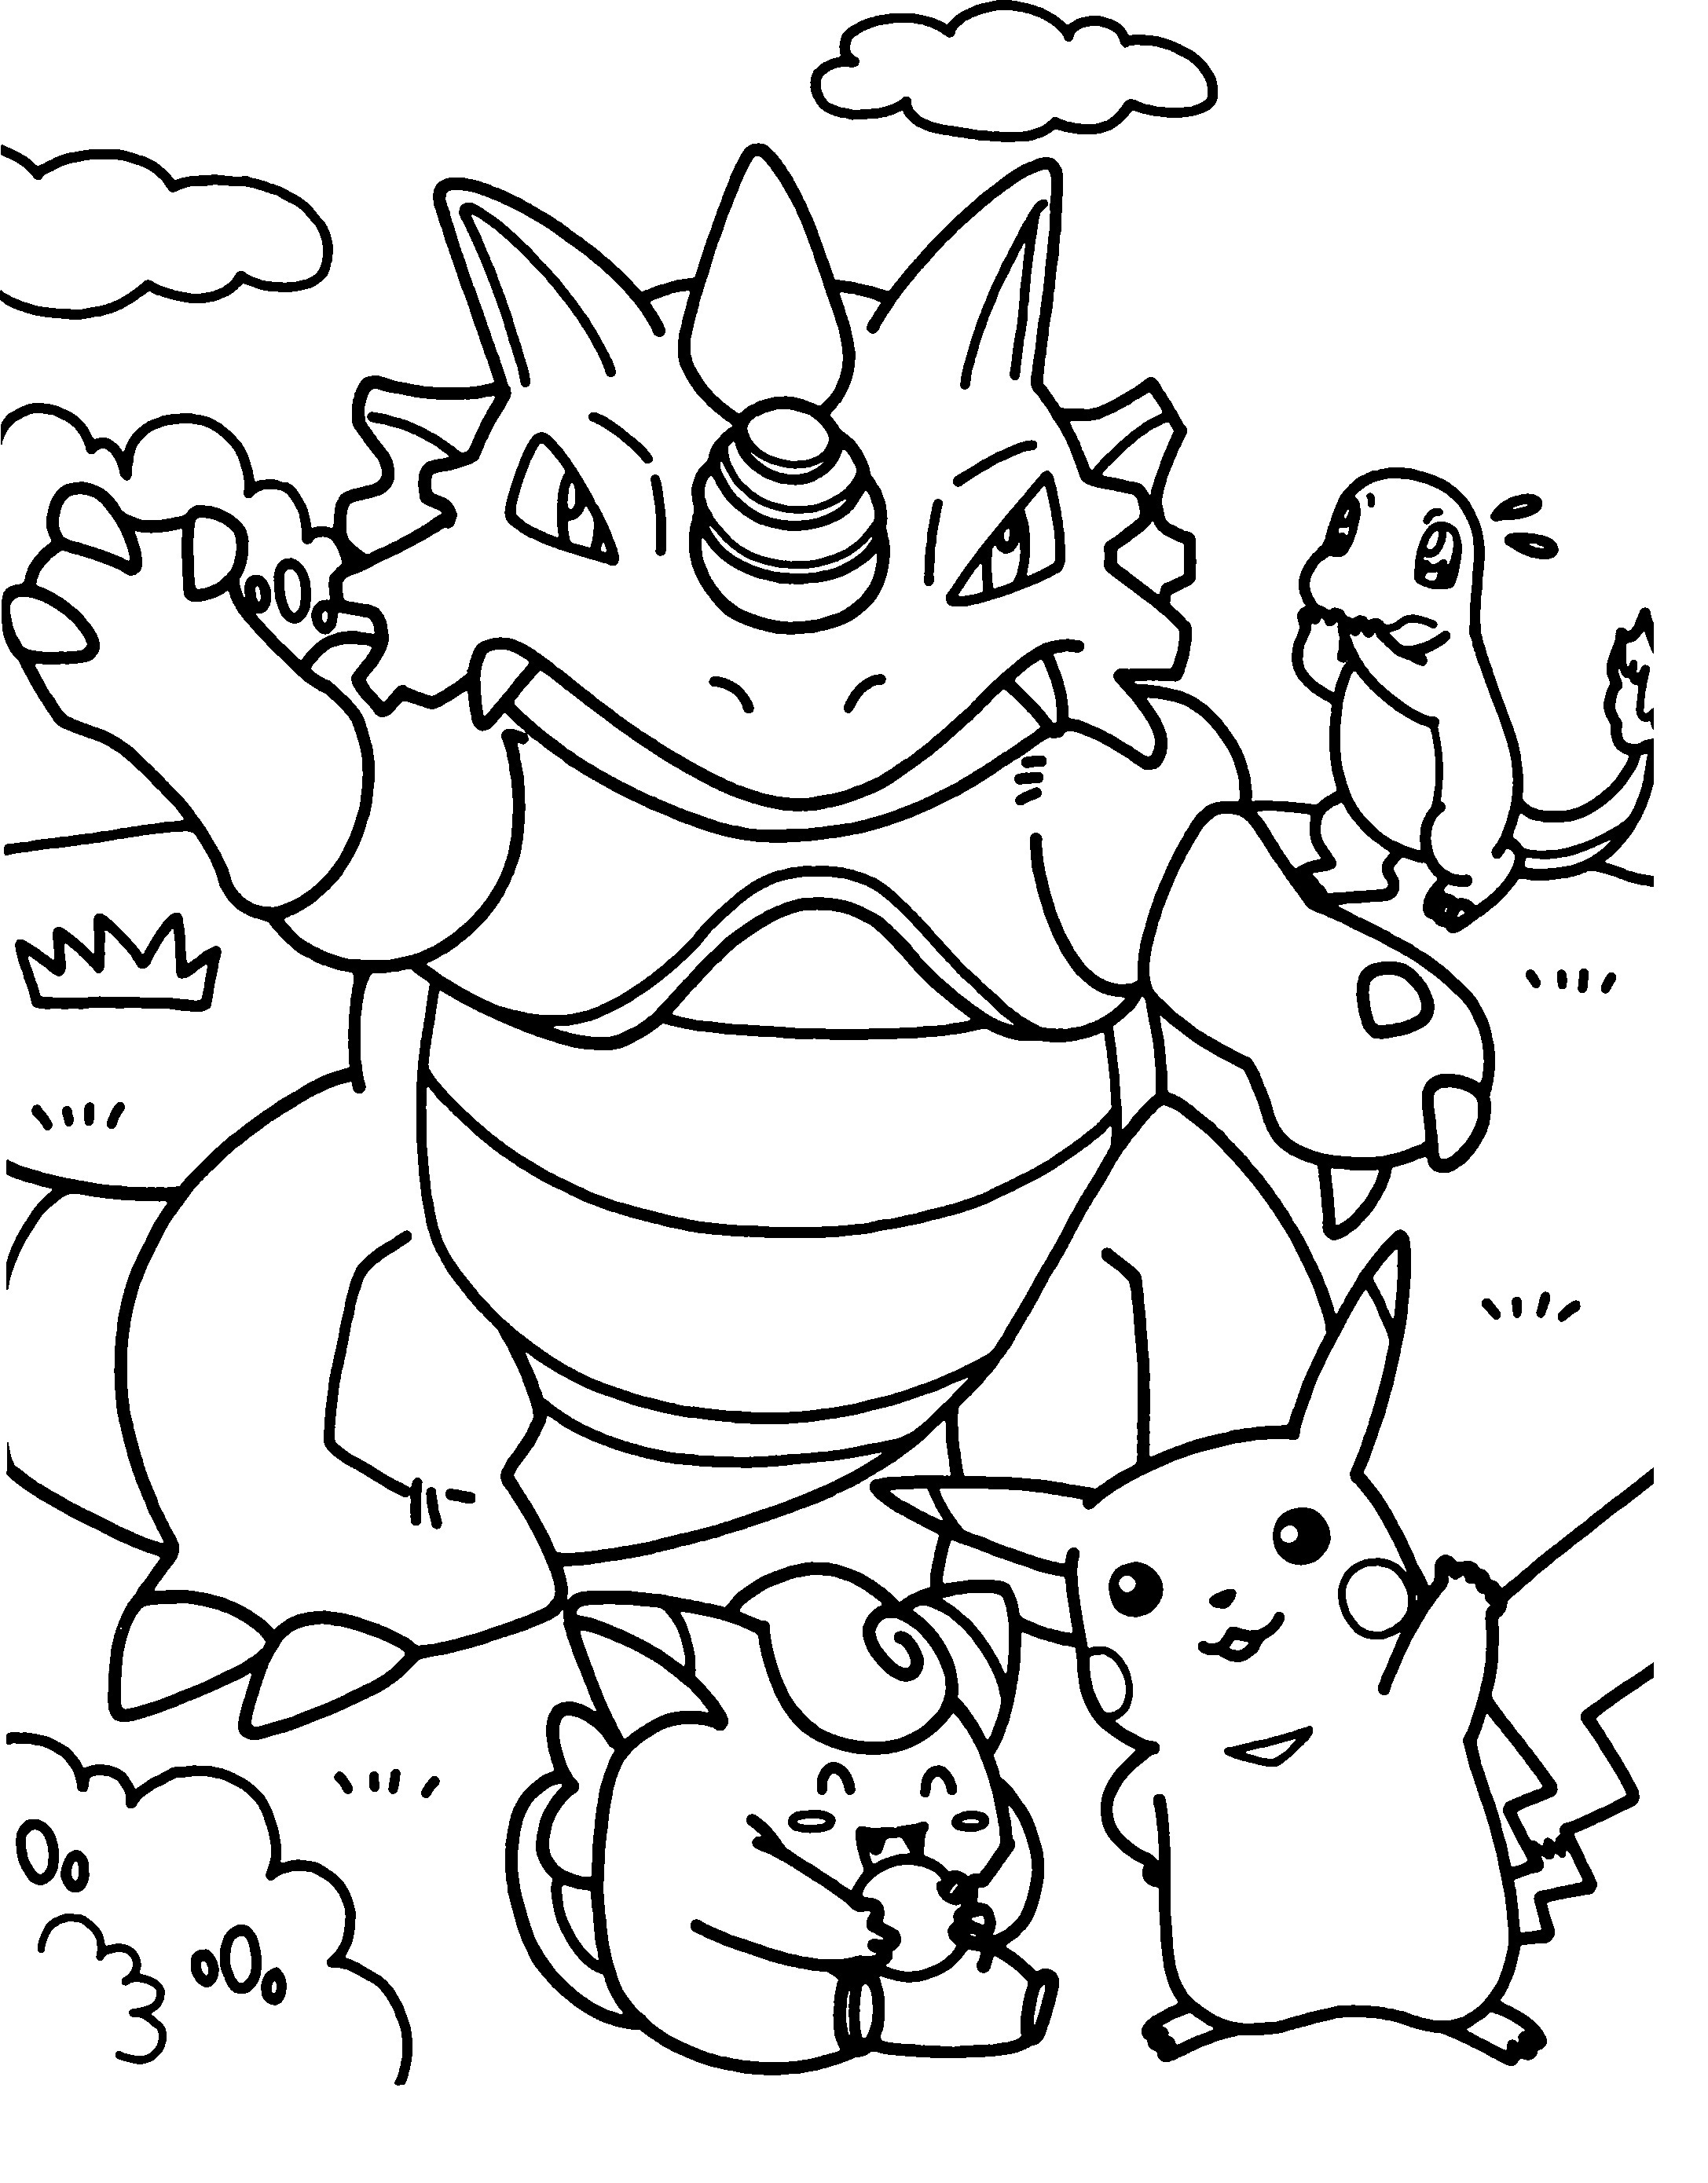 coloring sheet pokemon pokemon coloring pages free and printable sheet pokemon coloring